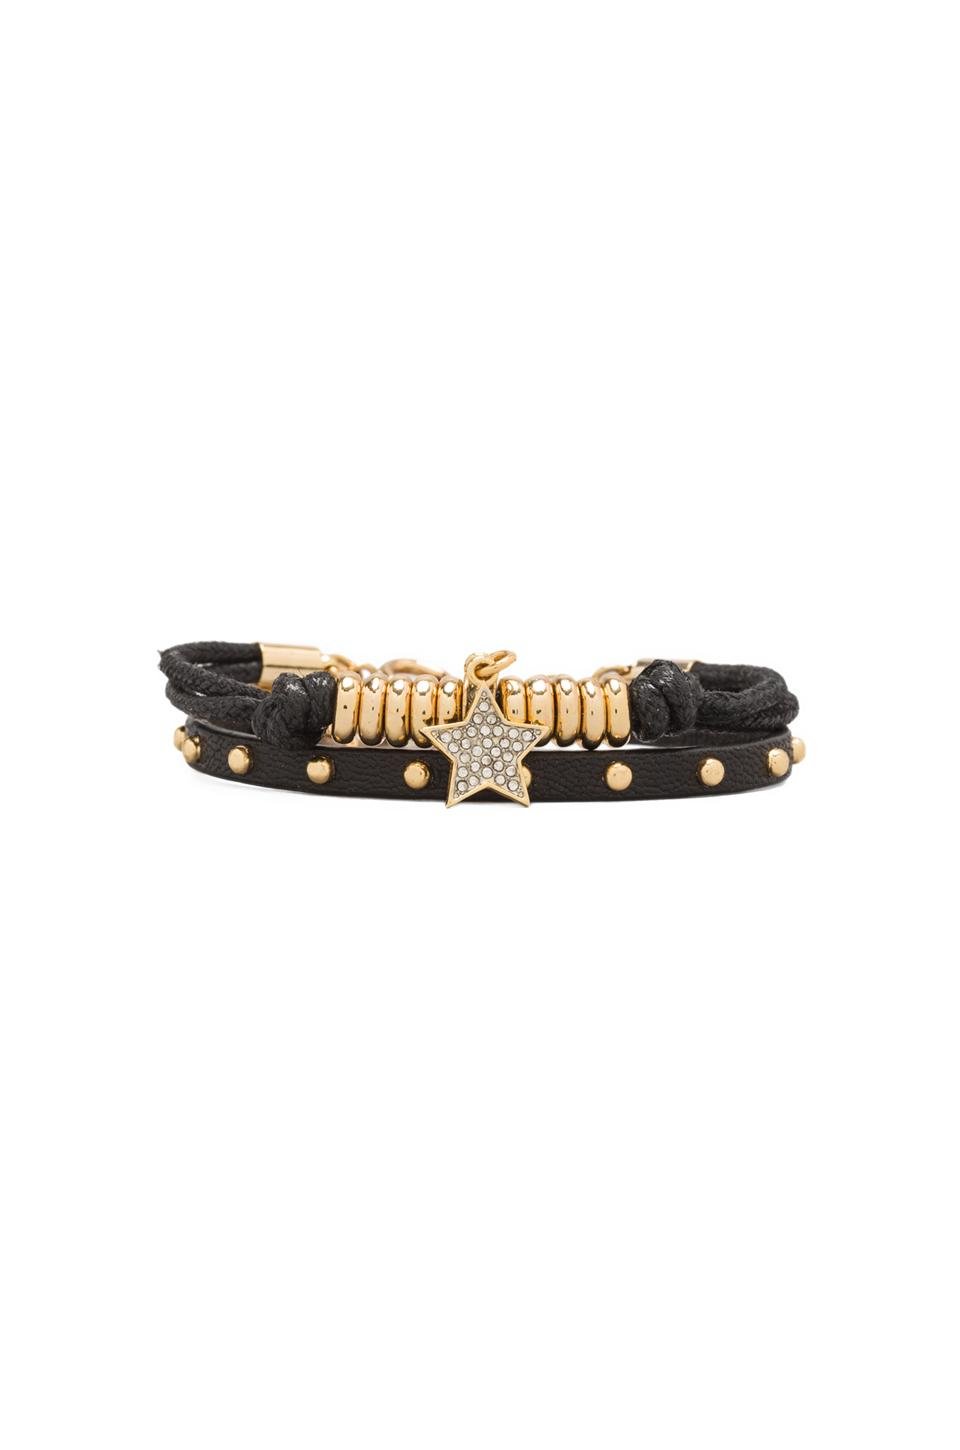 Juicy Couture Friendship Bracelet Duo in Black